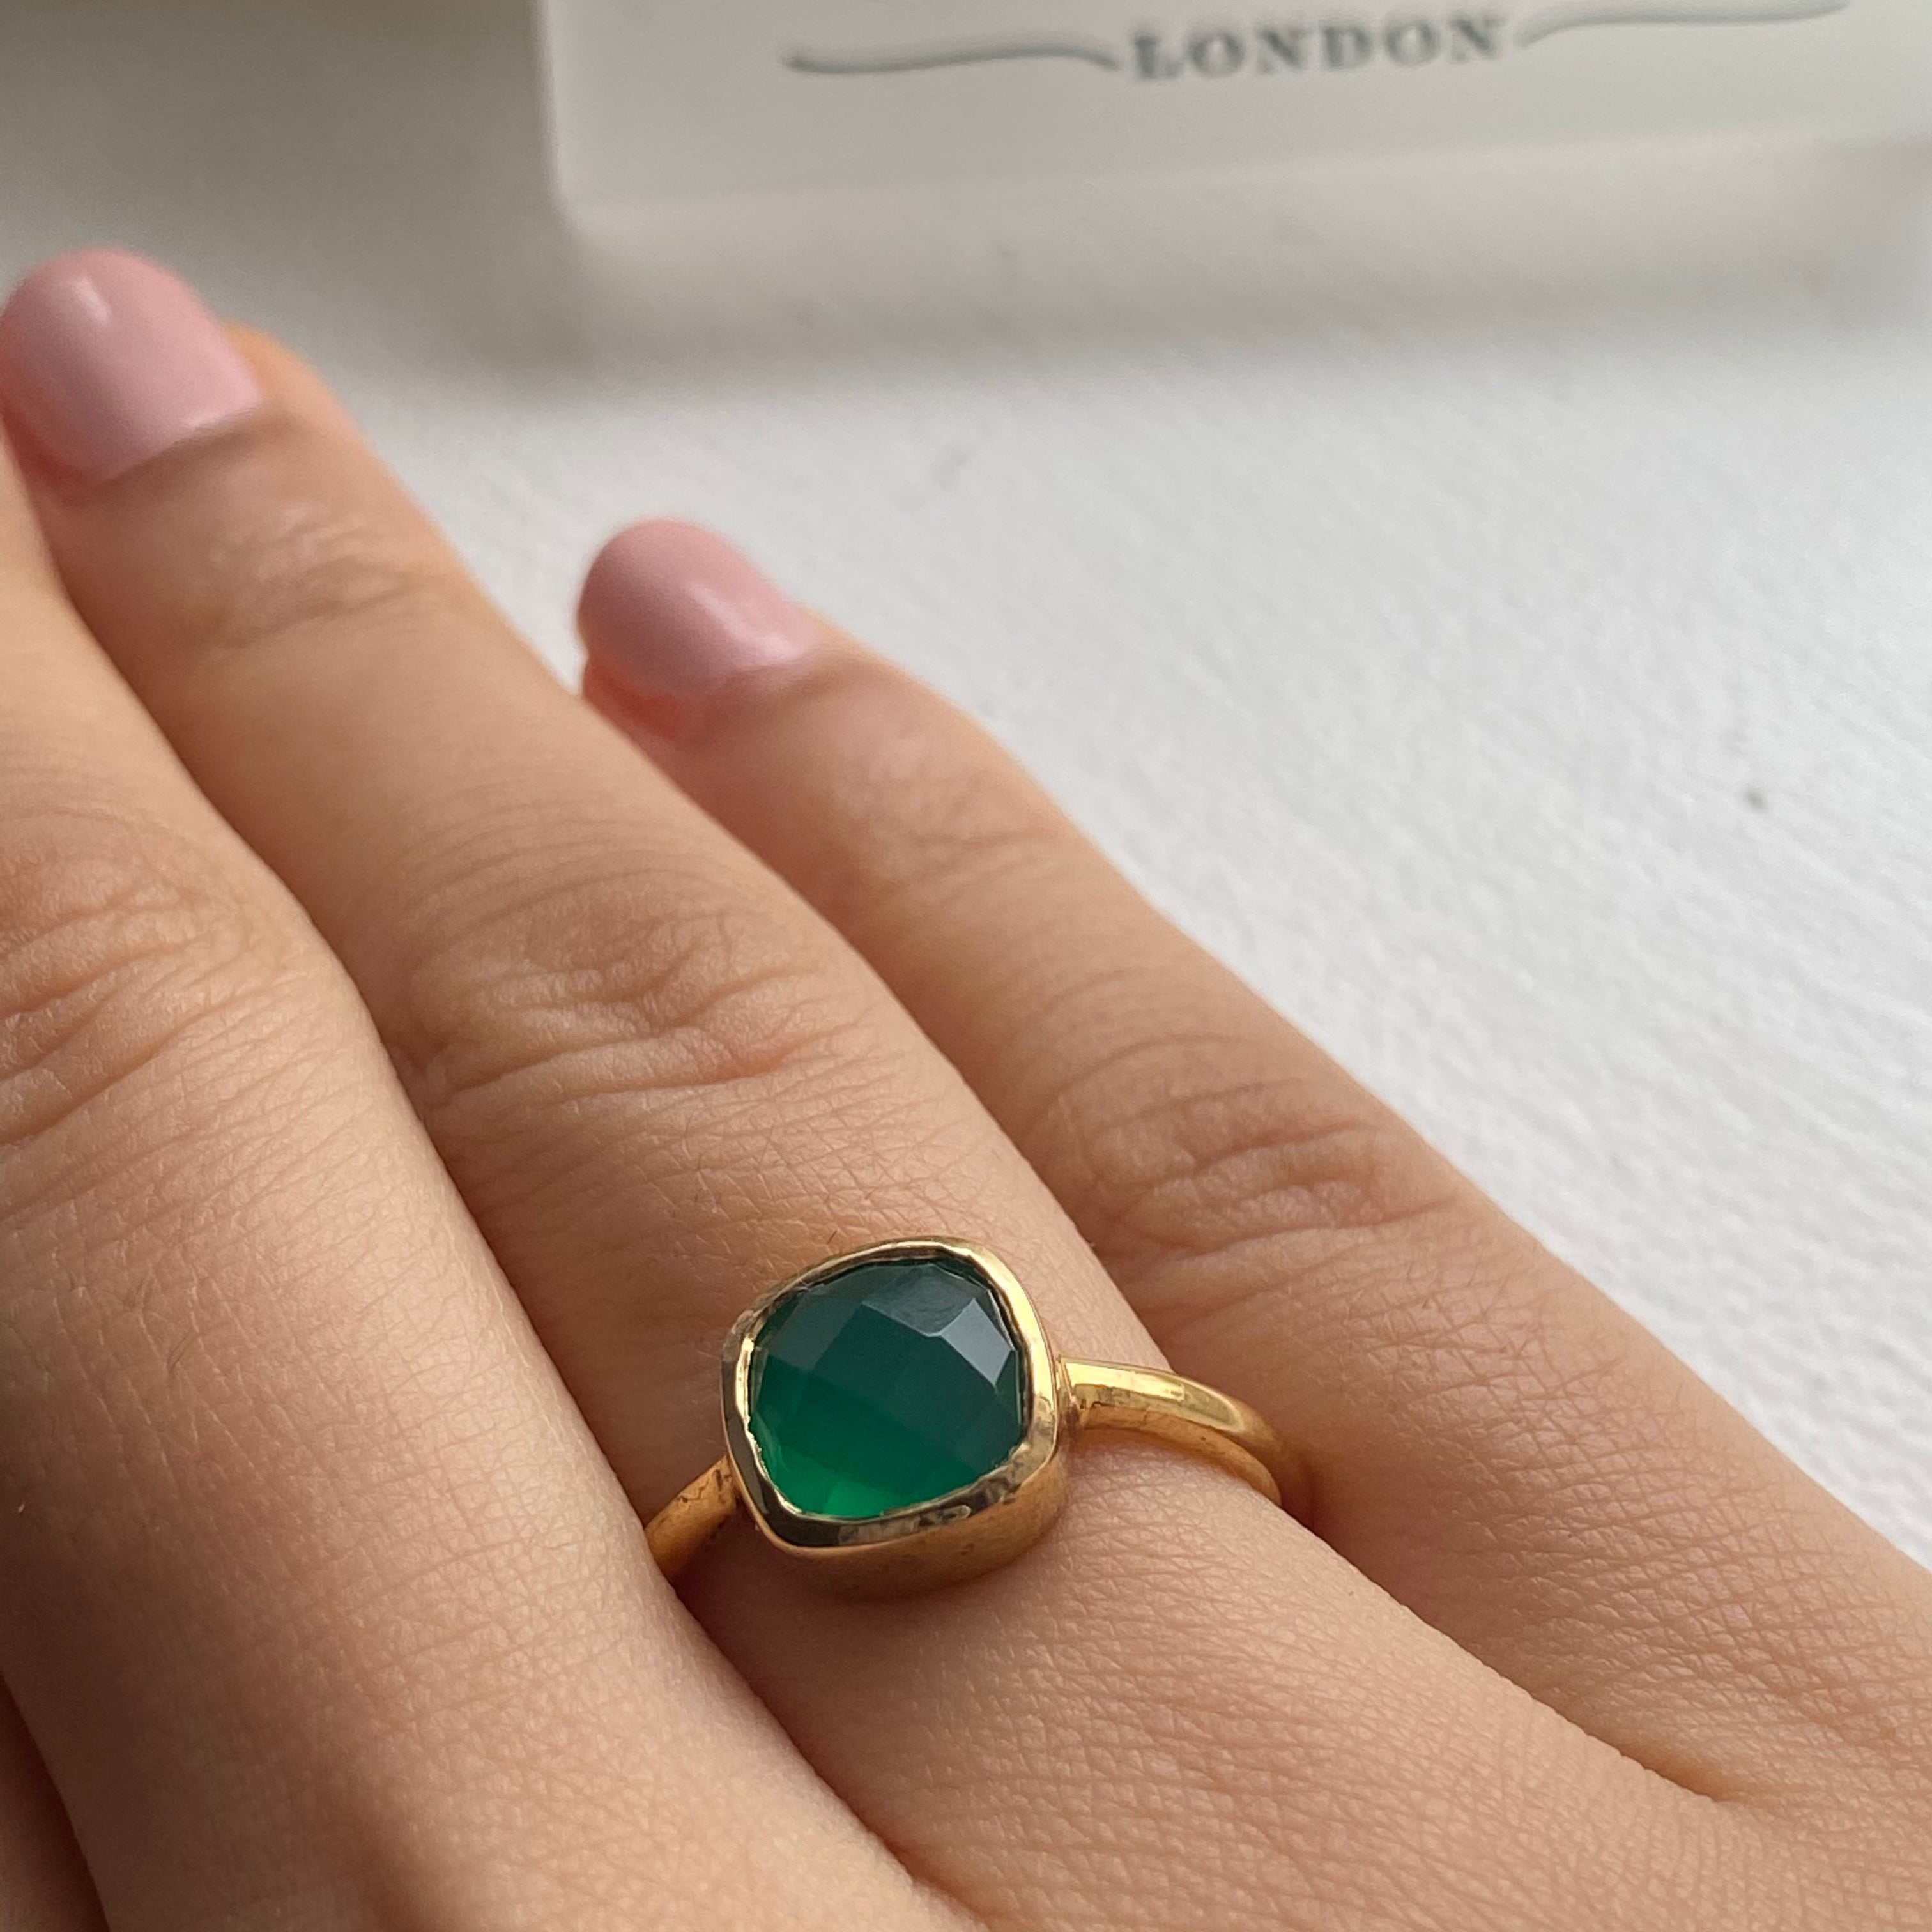 Faceted Square Cut Natural Gemstone Gold Plated Sterling Silver Solitaire Ring - Green Onyx